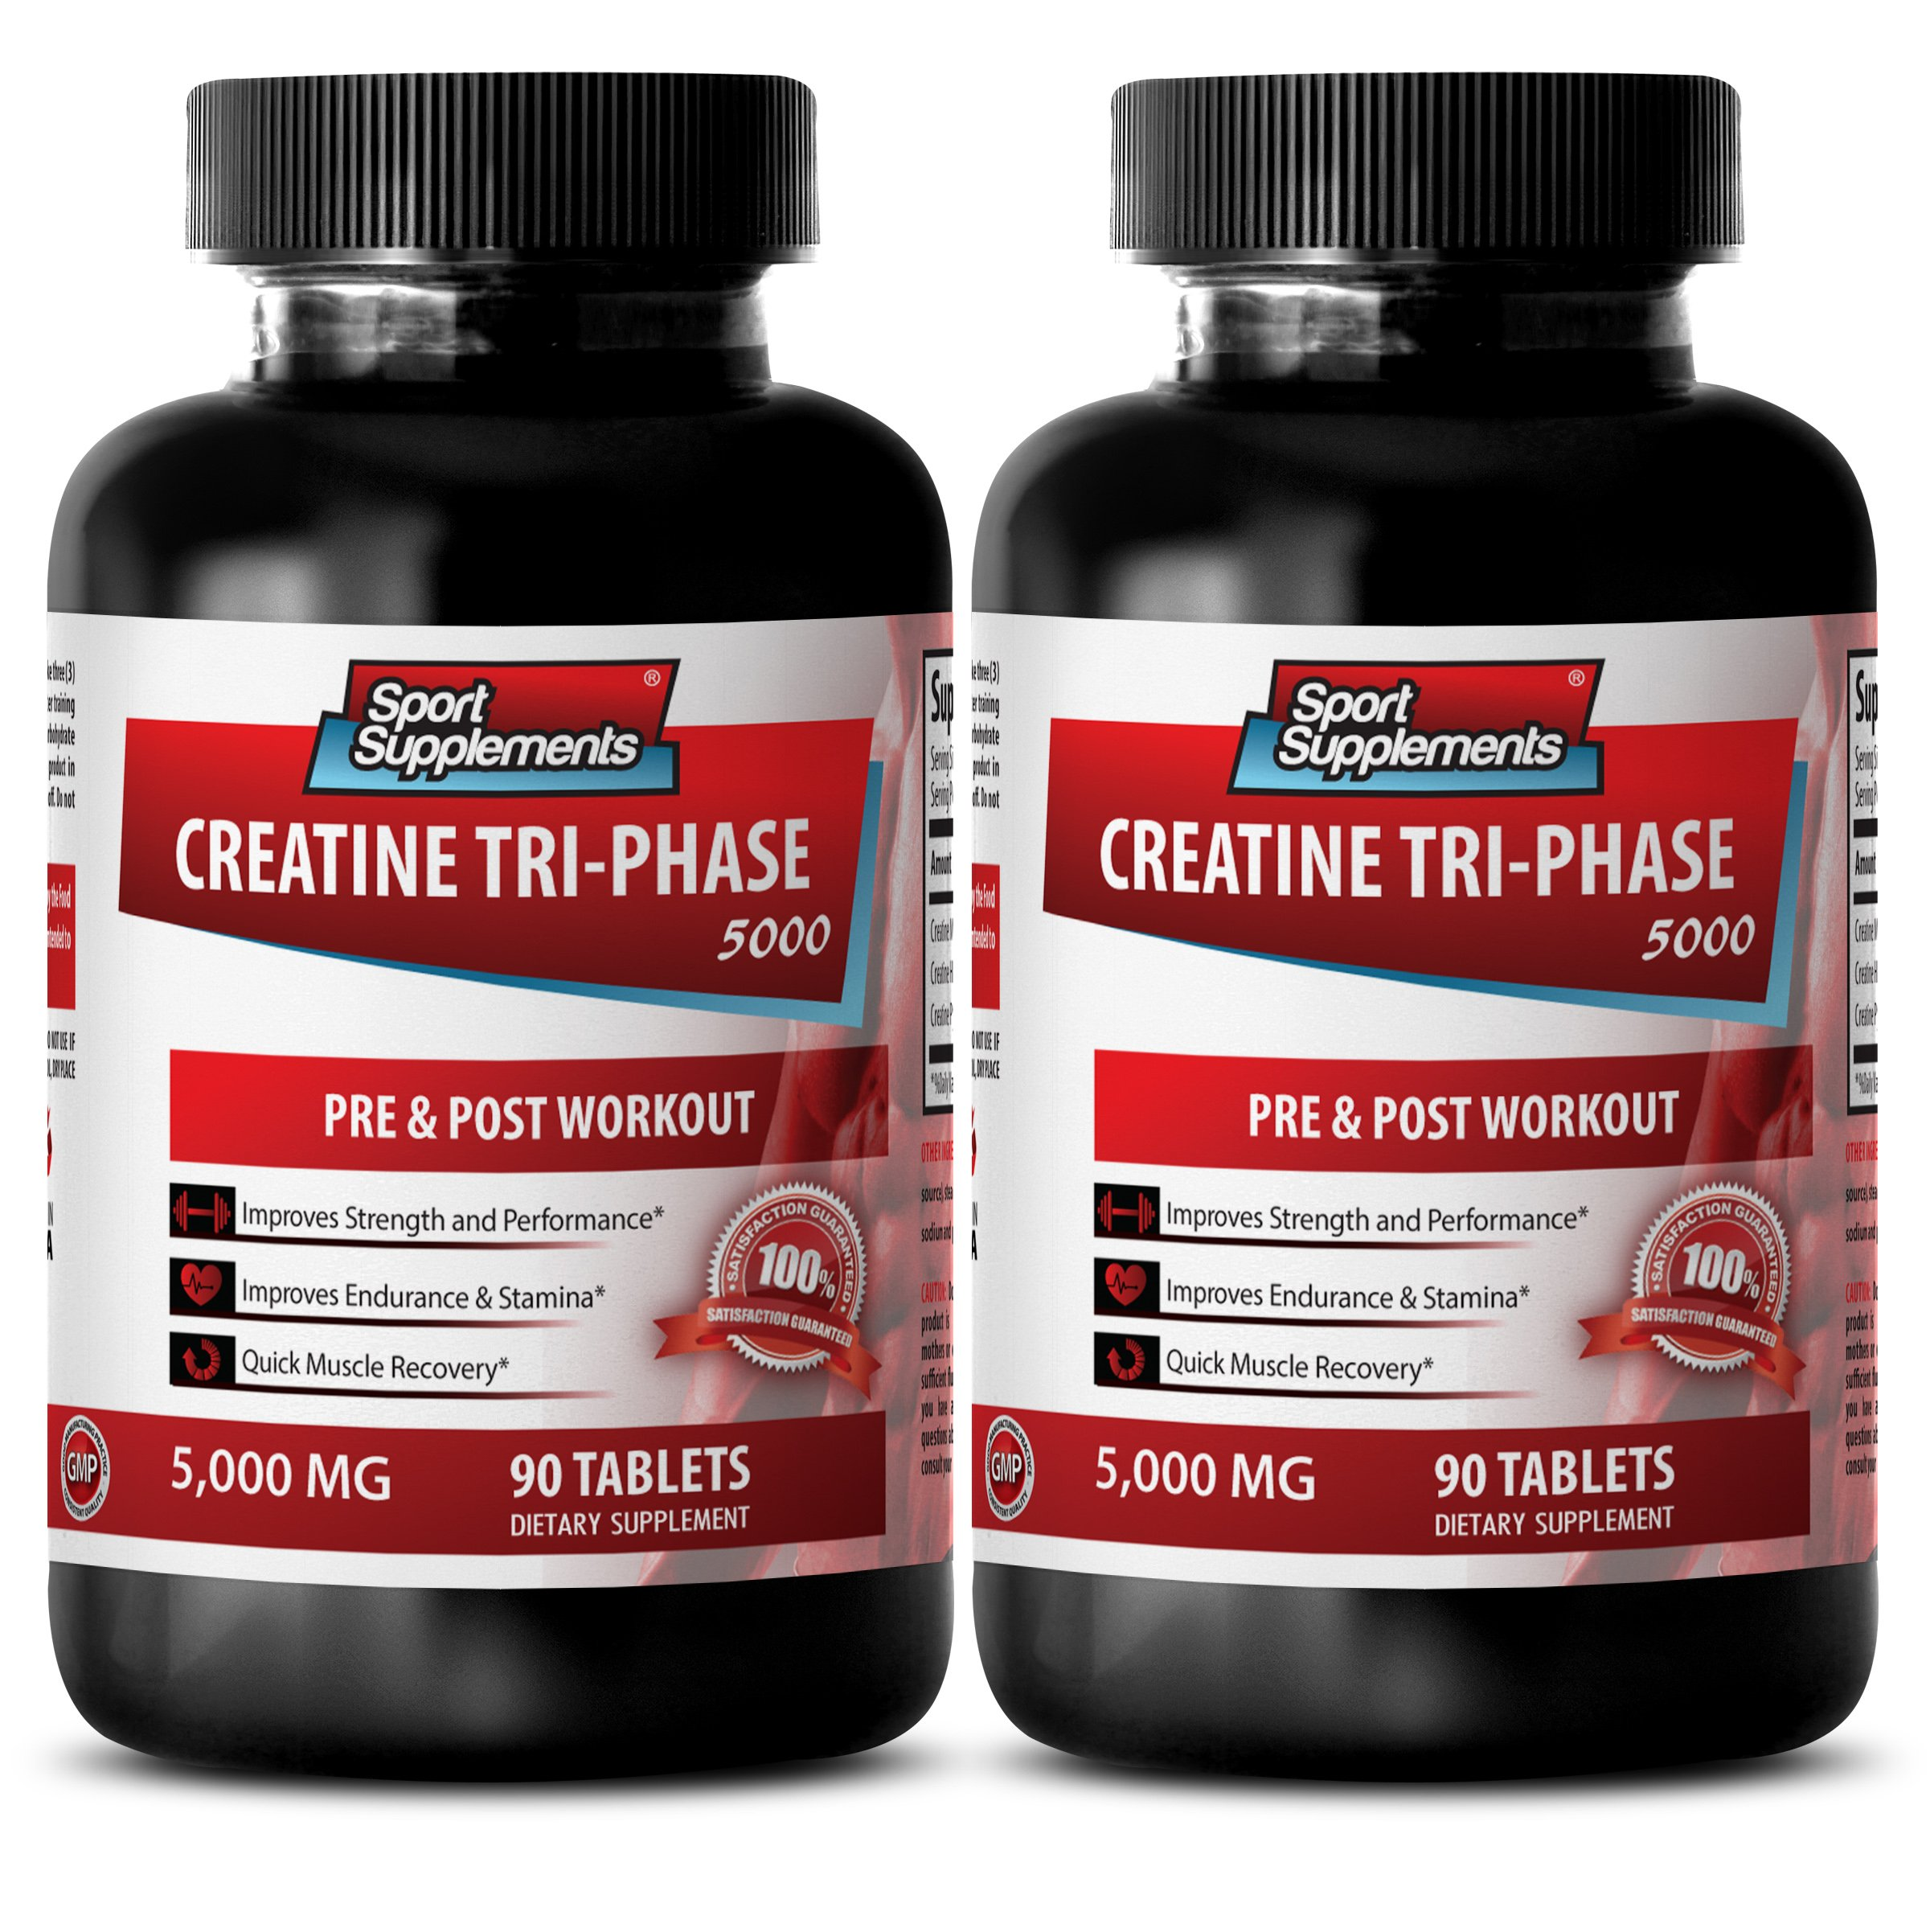 Creatine ethyl ester capsules Increases